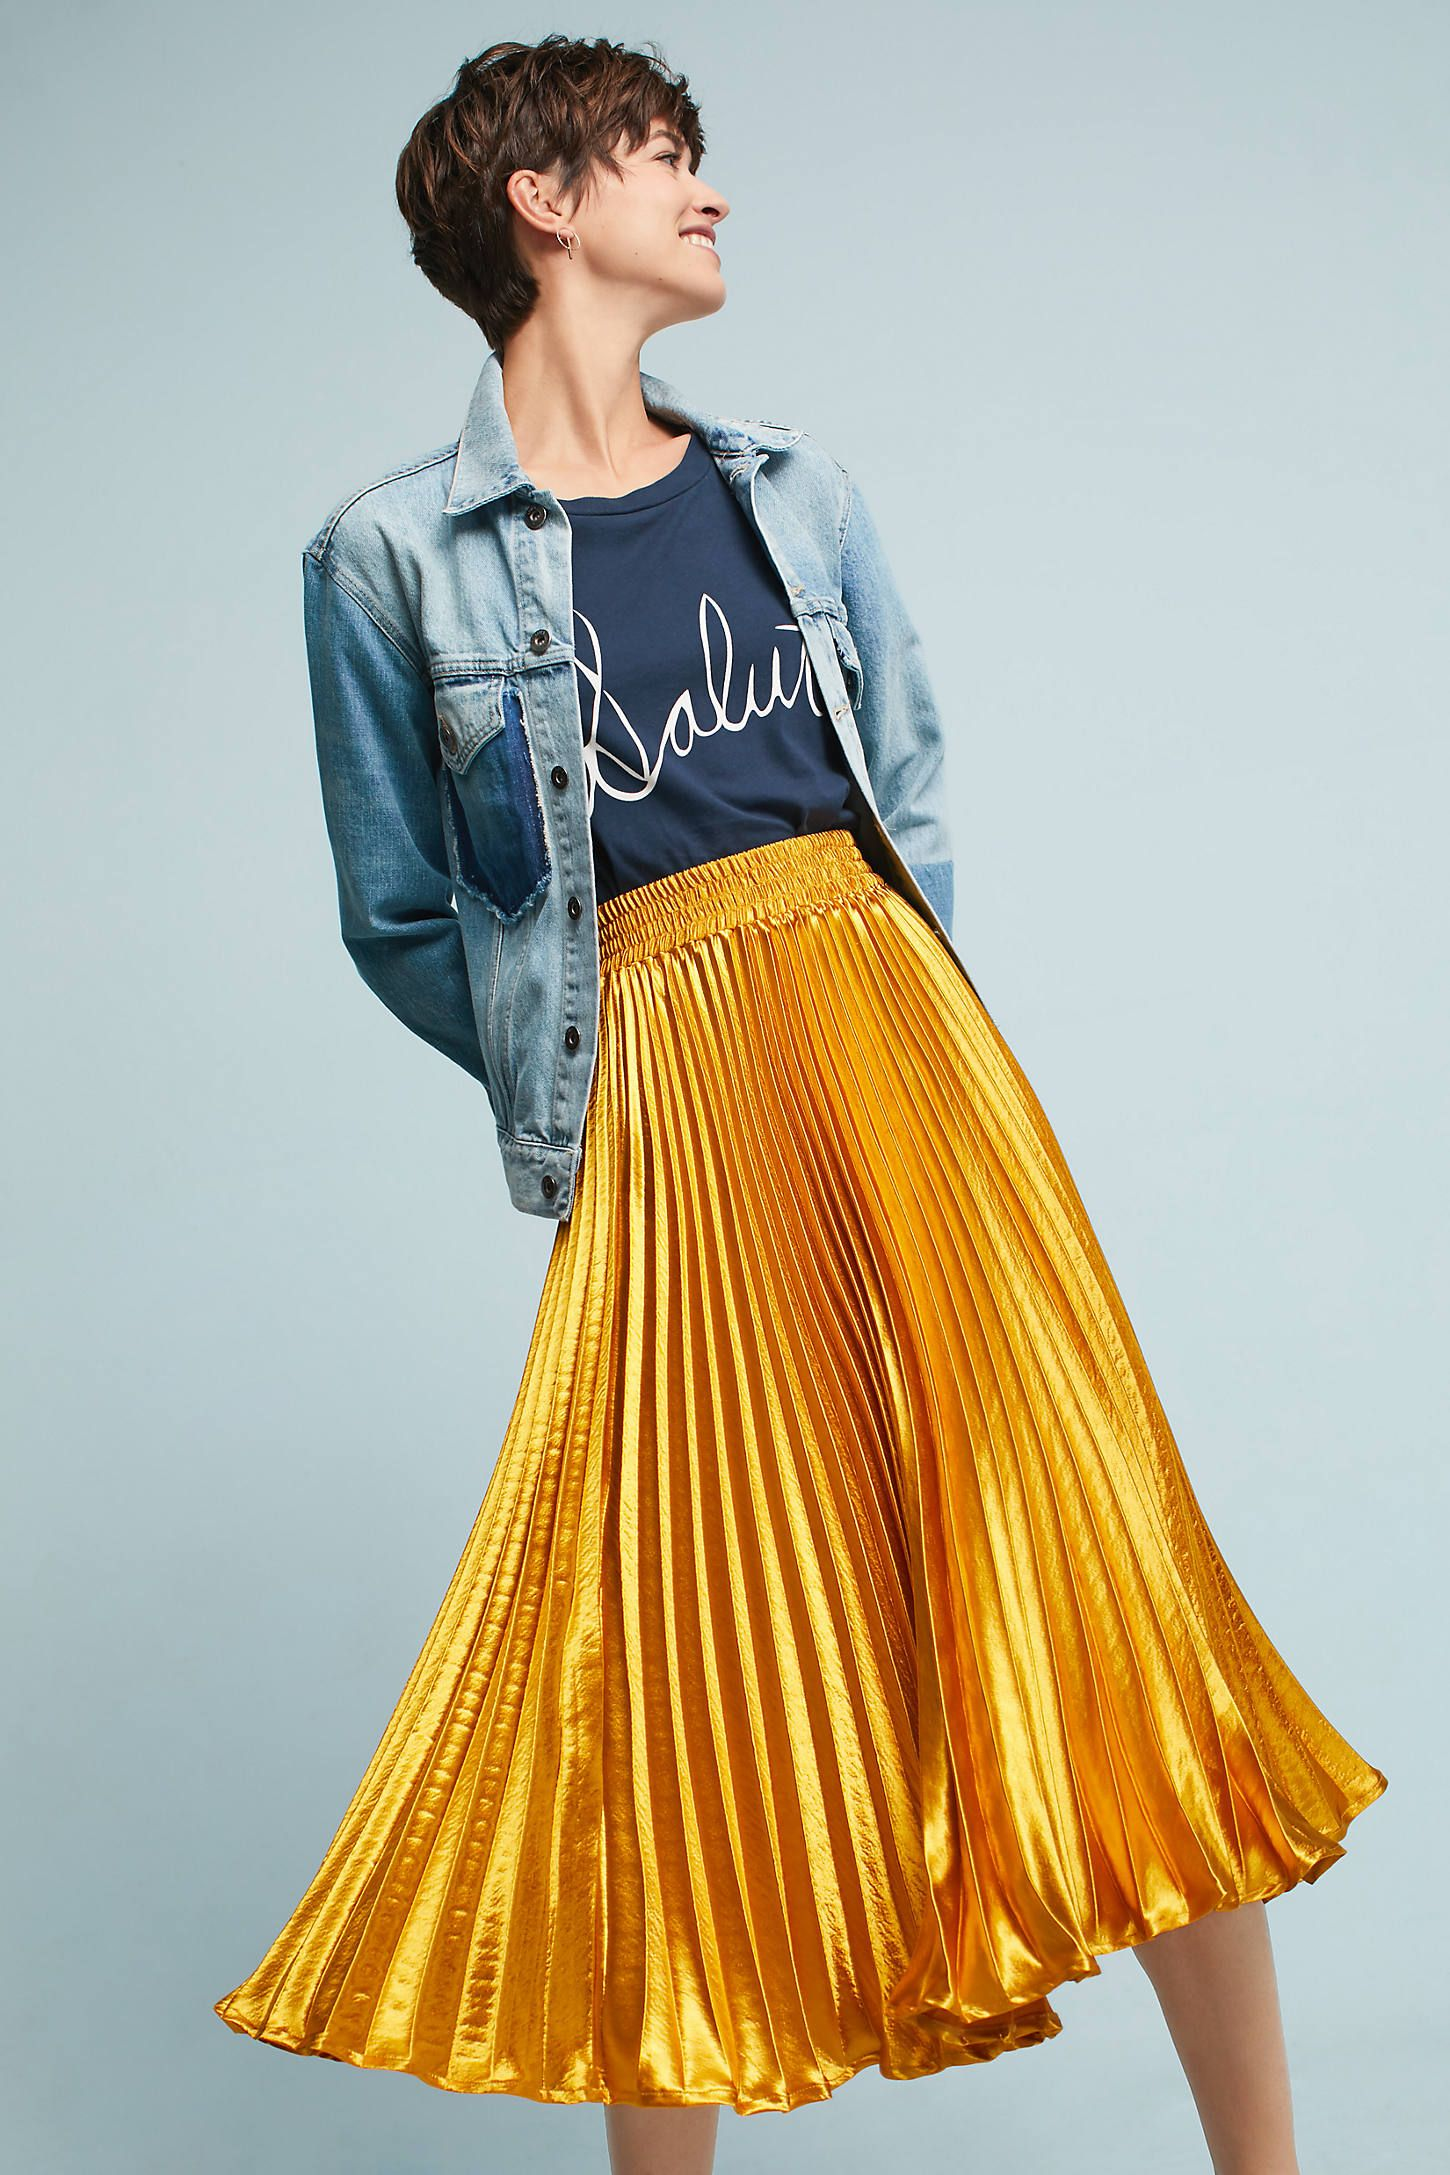 62ef5f544af0 Gorgeous gold skirt with tiny pleats // Gemma Pleated Skirt from  anthropologie // love a shiny dressy skirt dresses down with a casual denim  jacket